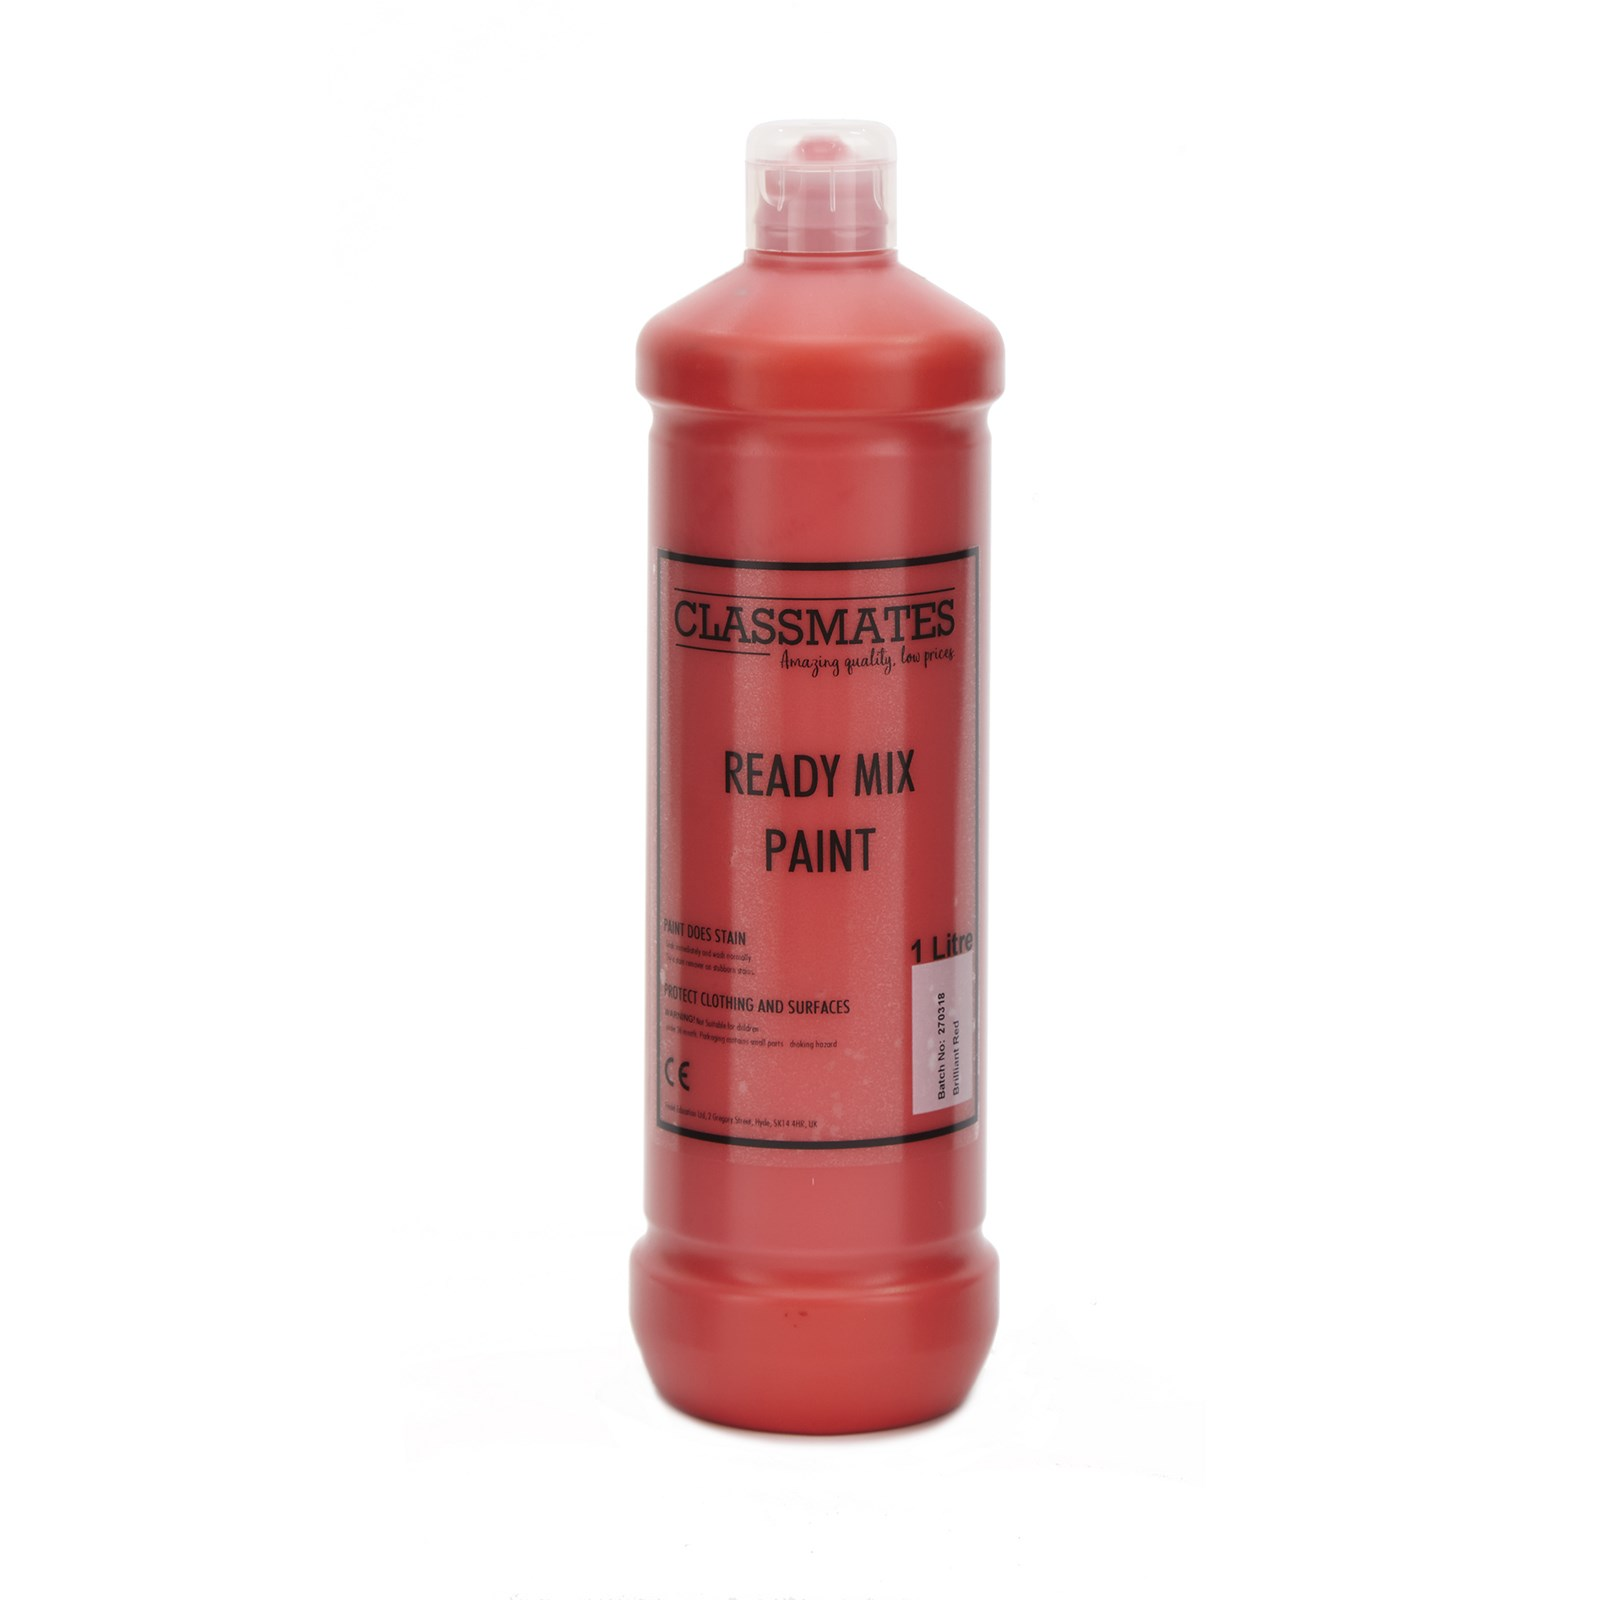 Classmates Ready Mixed Paint in Brilliant Red - 1 Litre Bottle